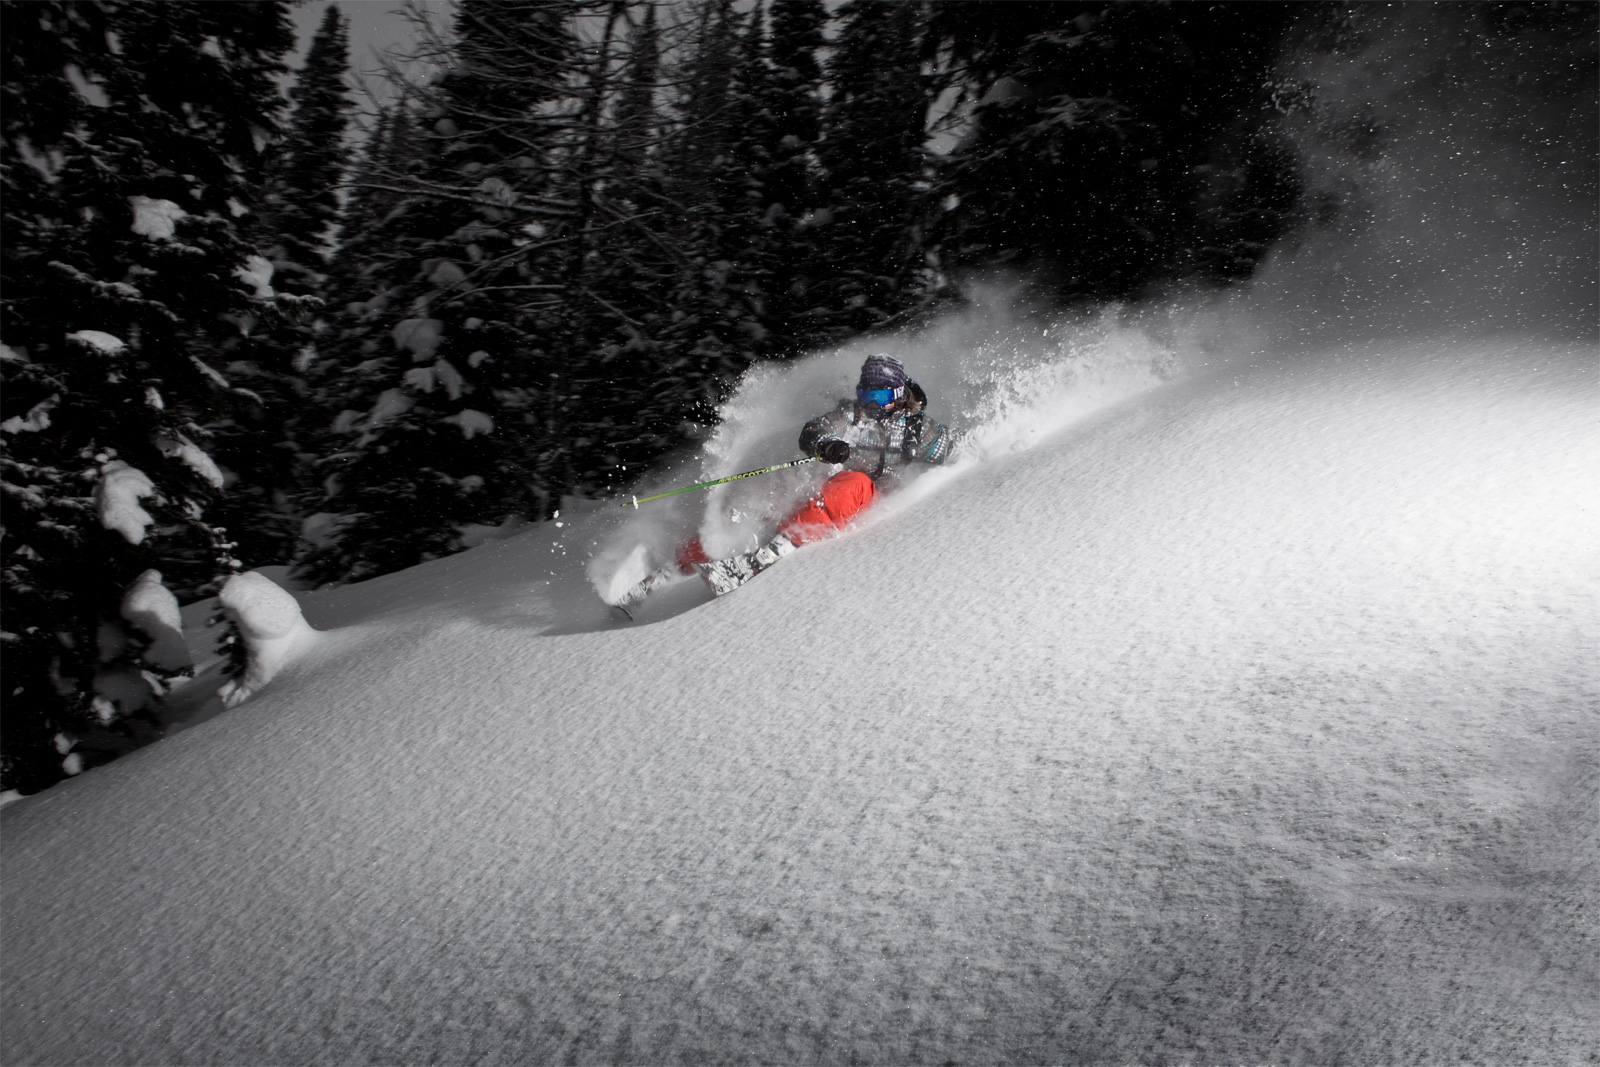 Skiing wallpaper and background image 1600x1067 id - Ski wallpaper ...